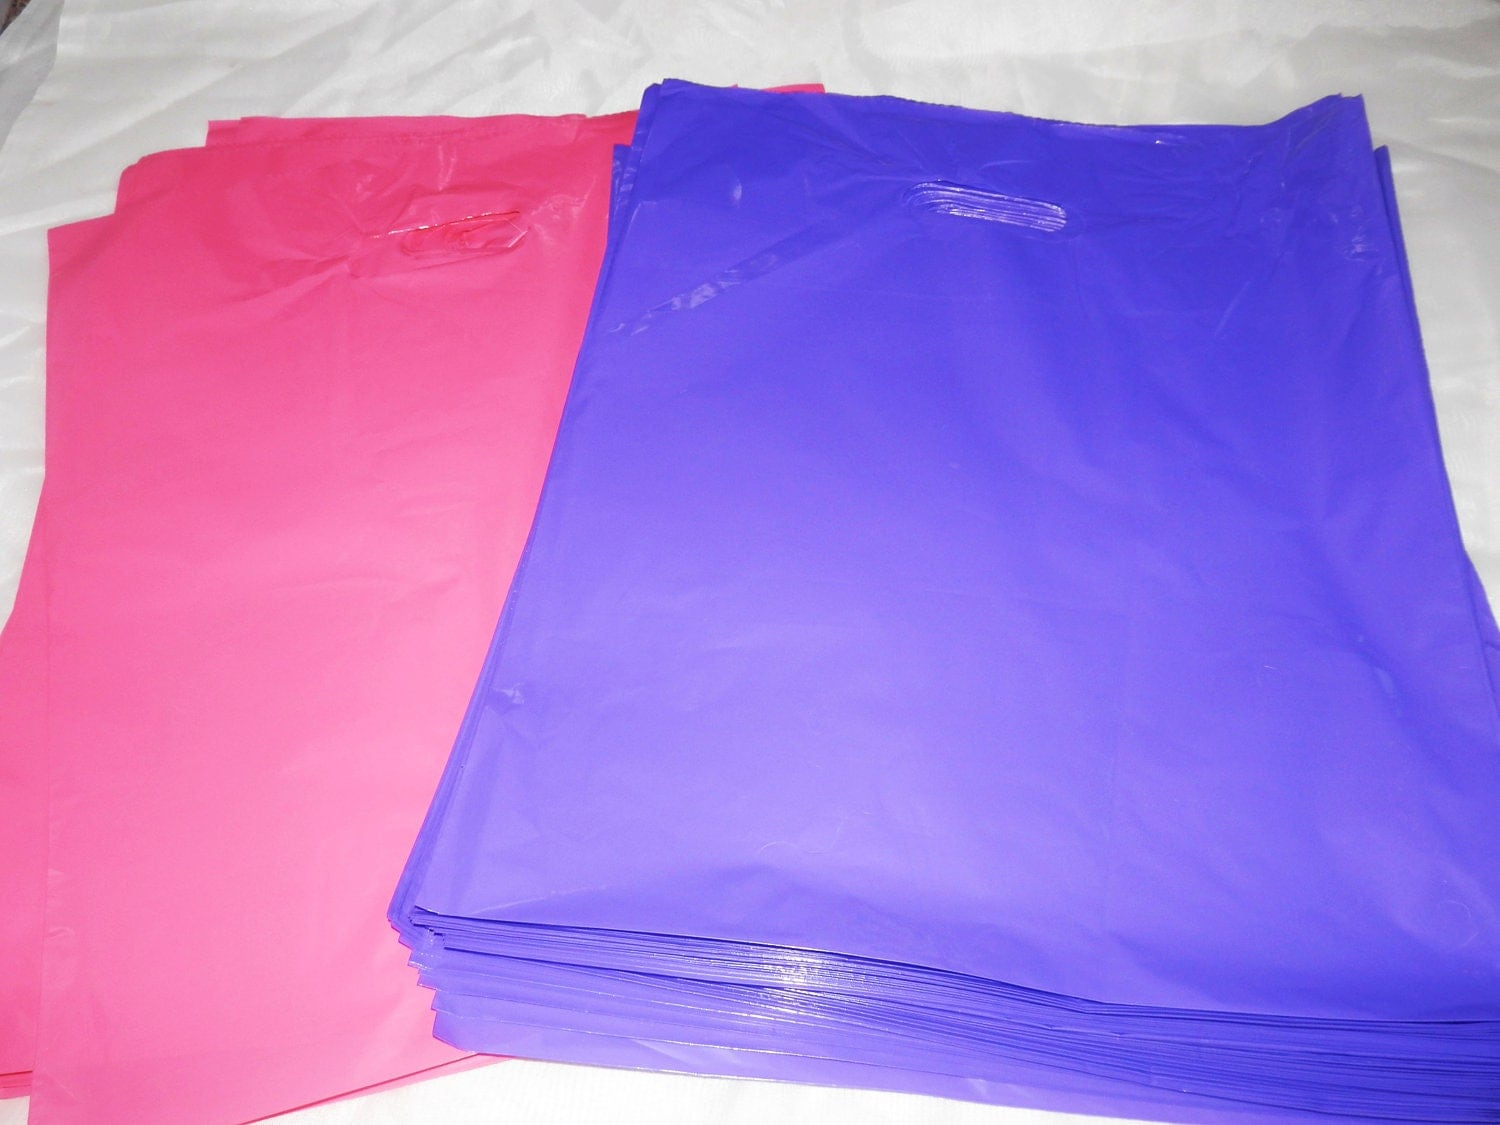 100 12x15 glossy pink and purple plastic merchandise bags for 12x15 calculator